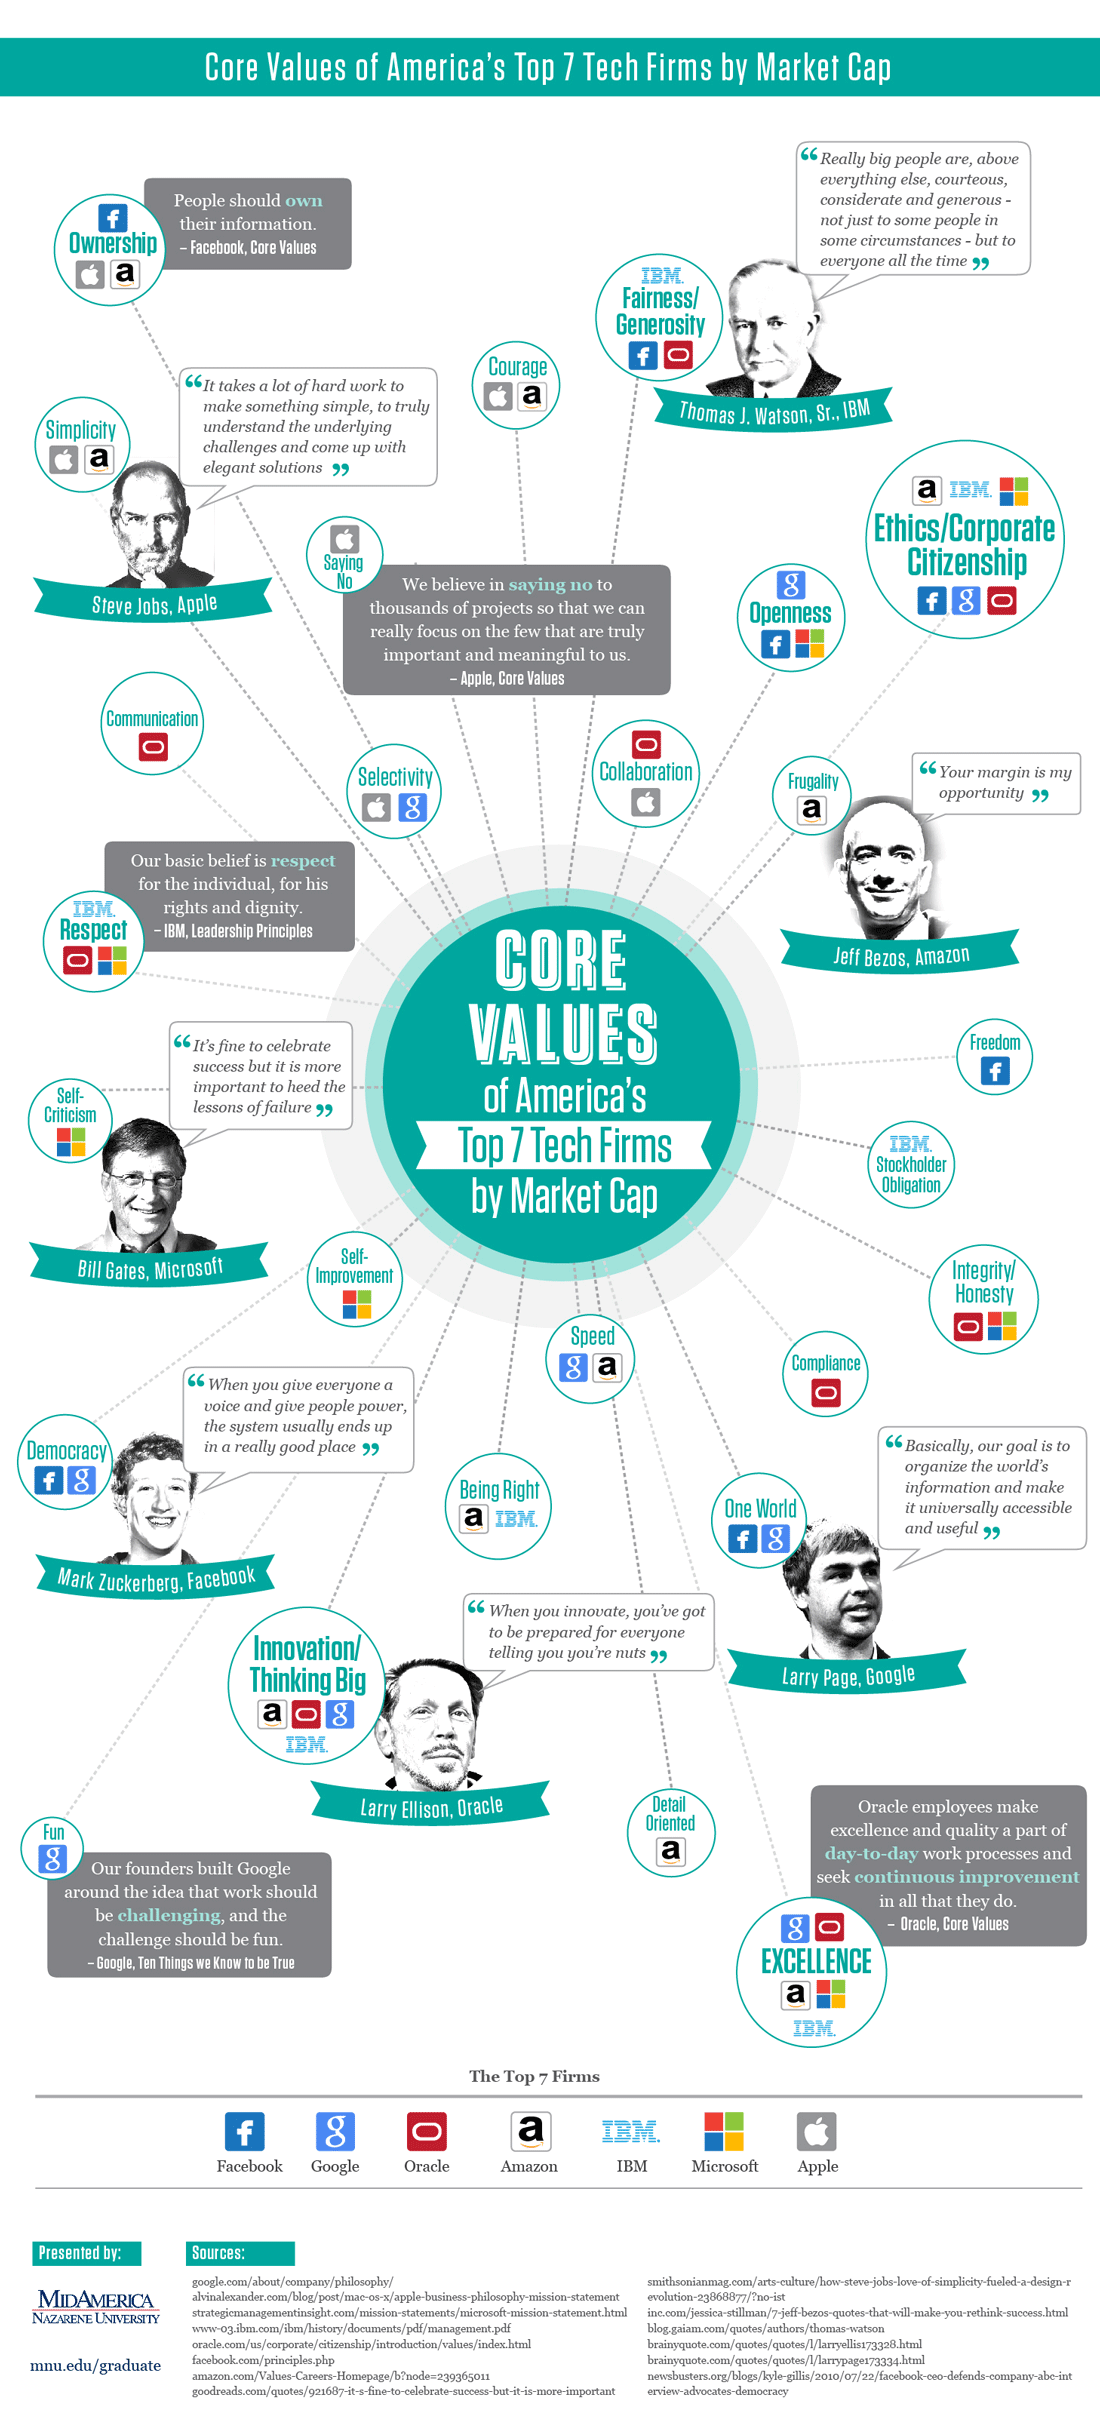 core-values-of-top-tech-firms_